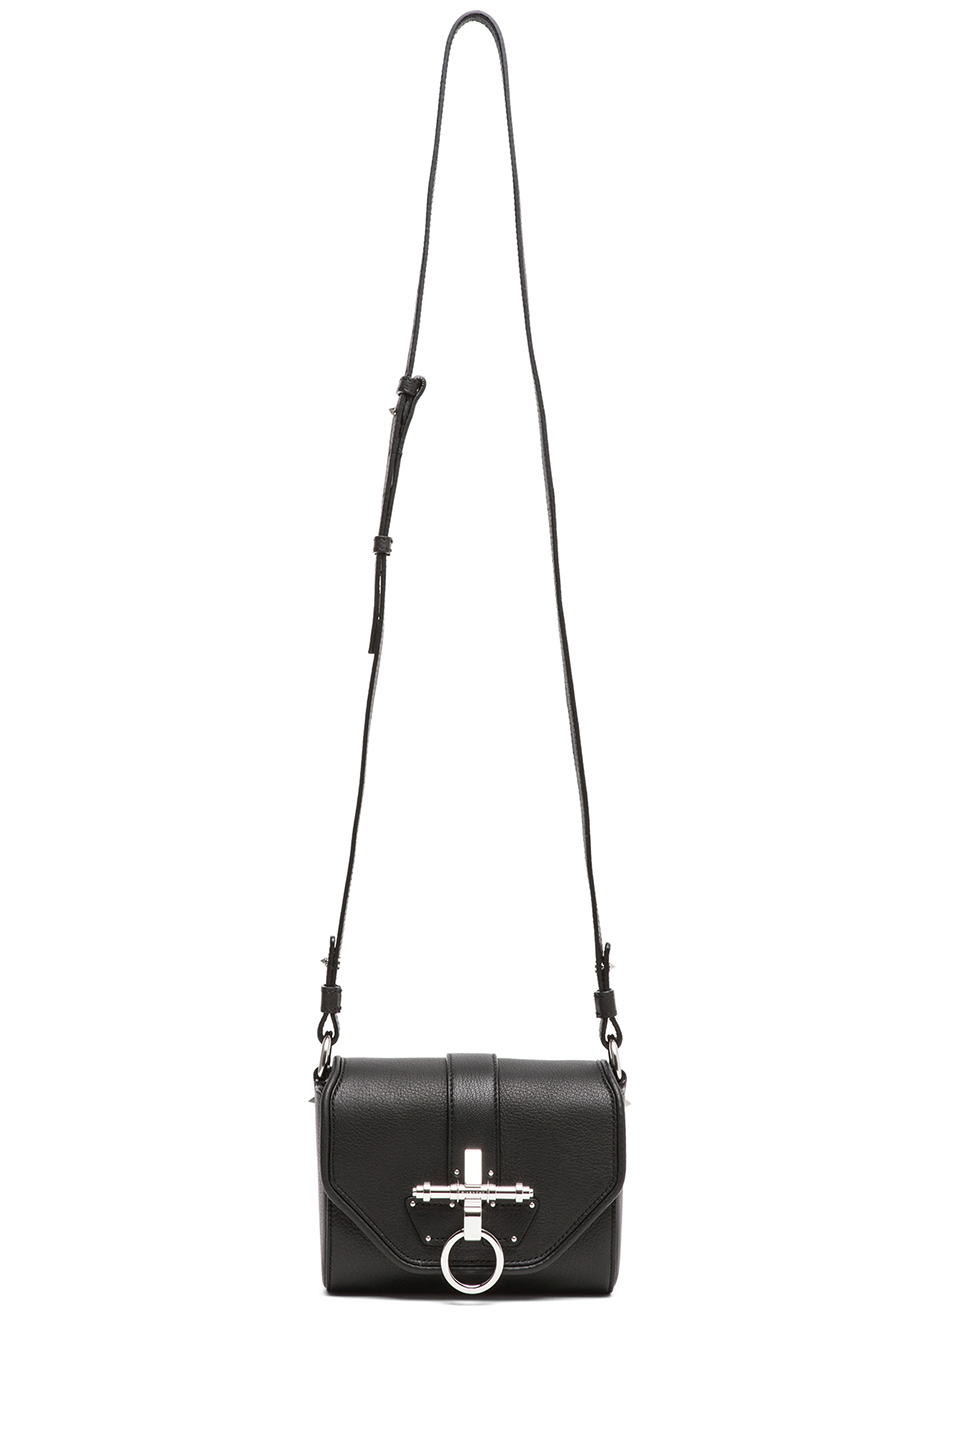 GIVENCHY|Obsedia in Black